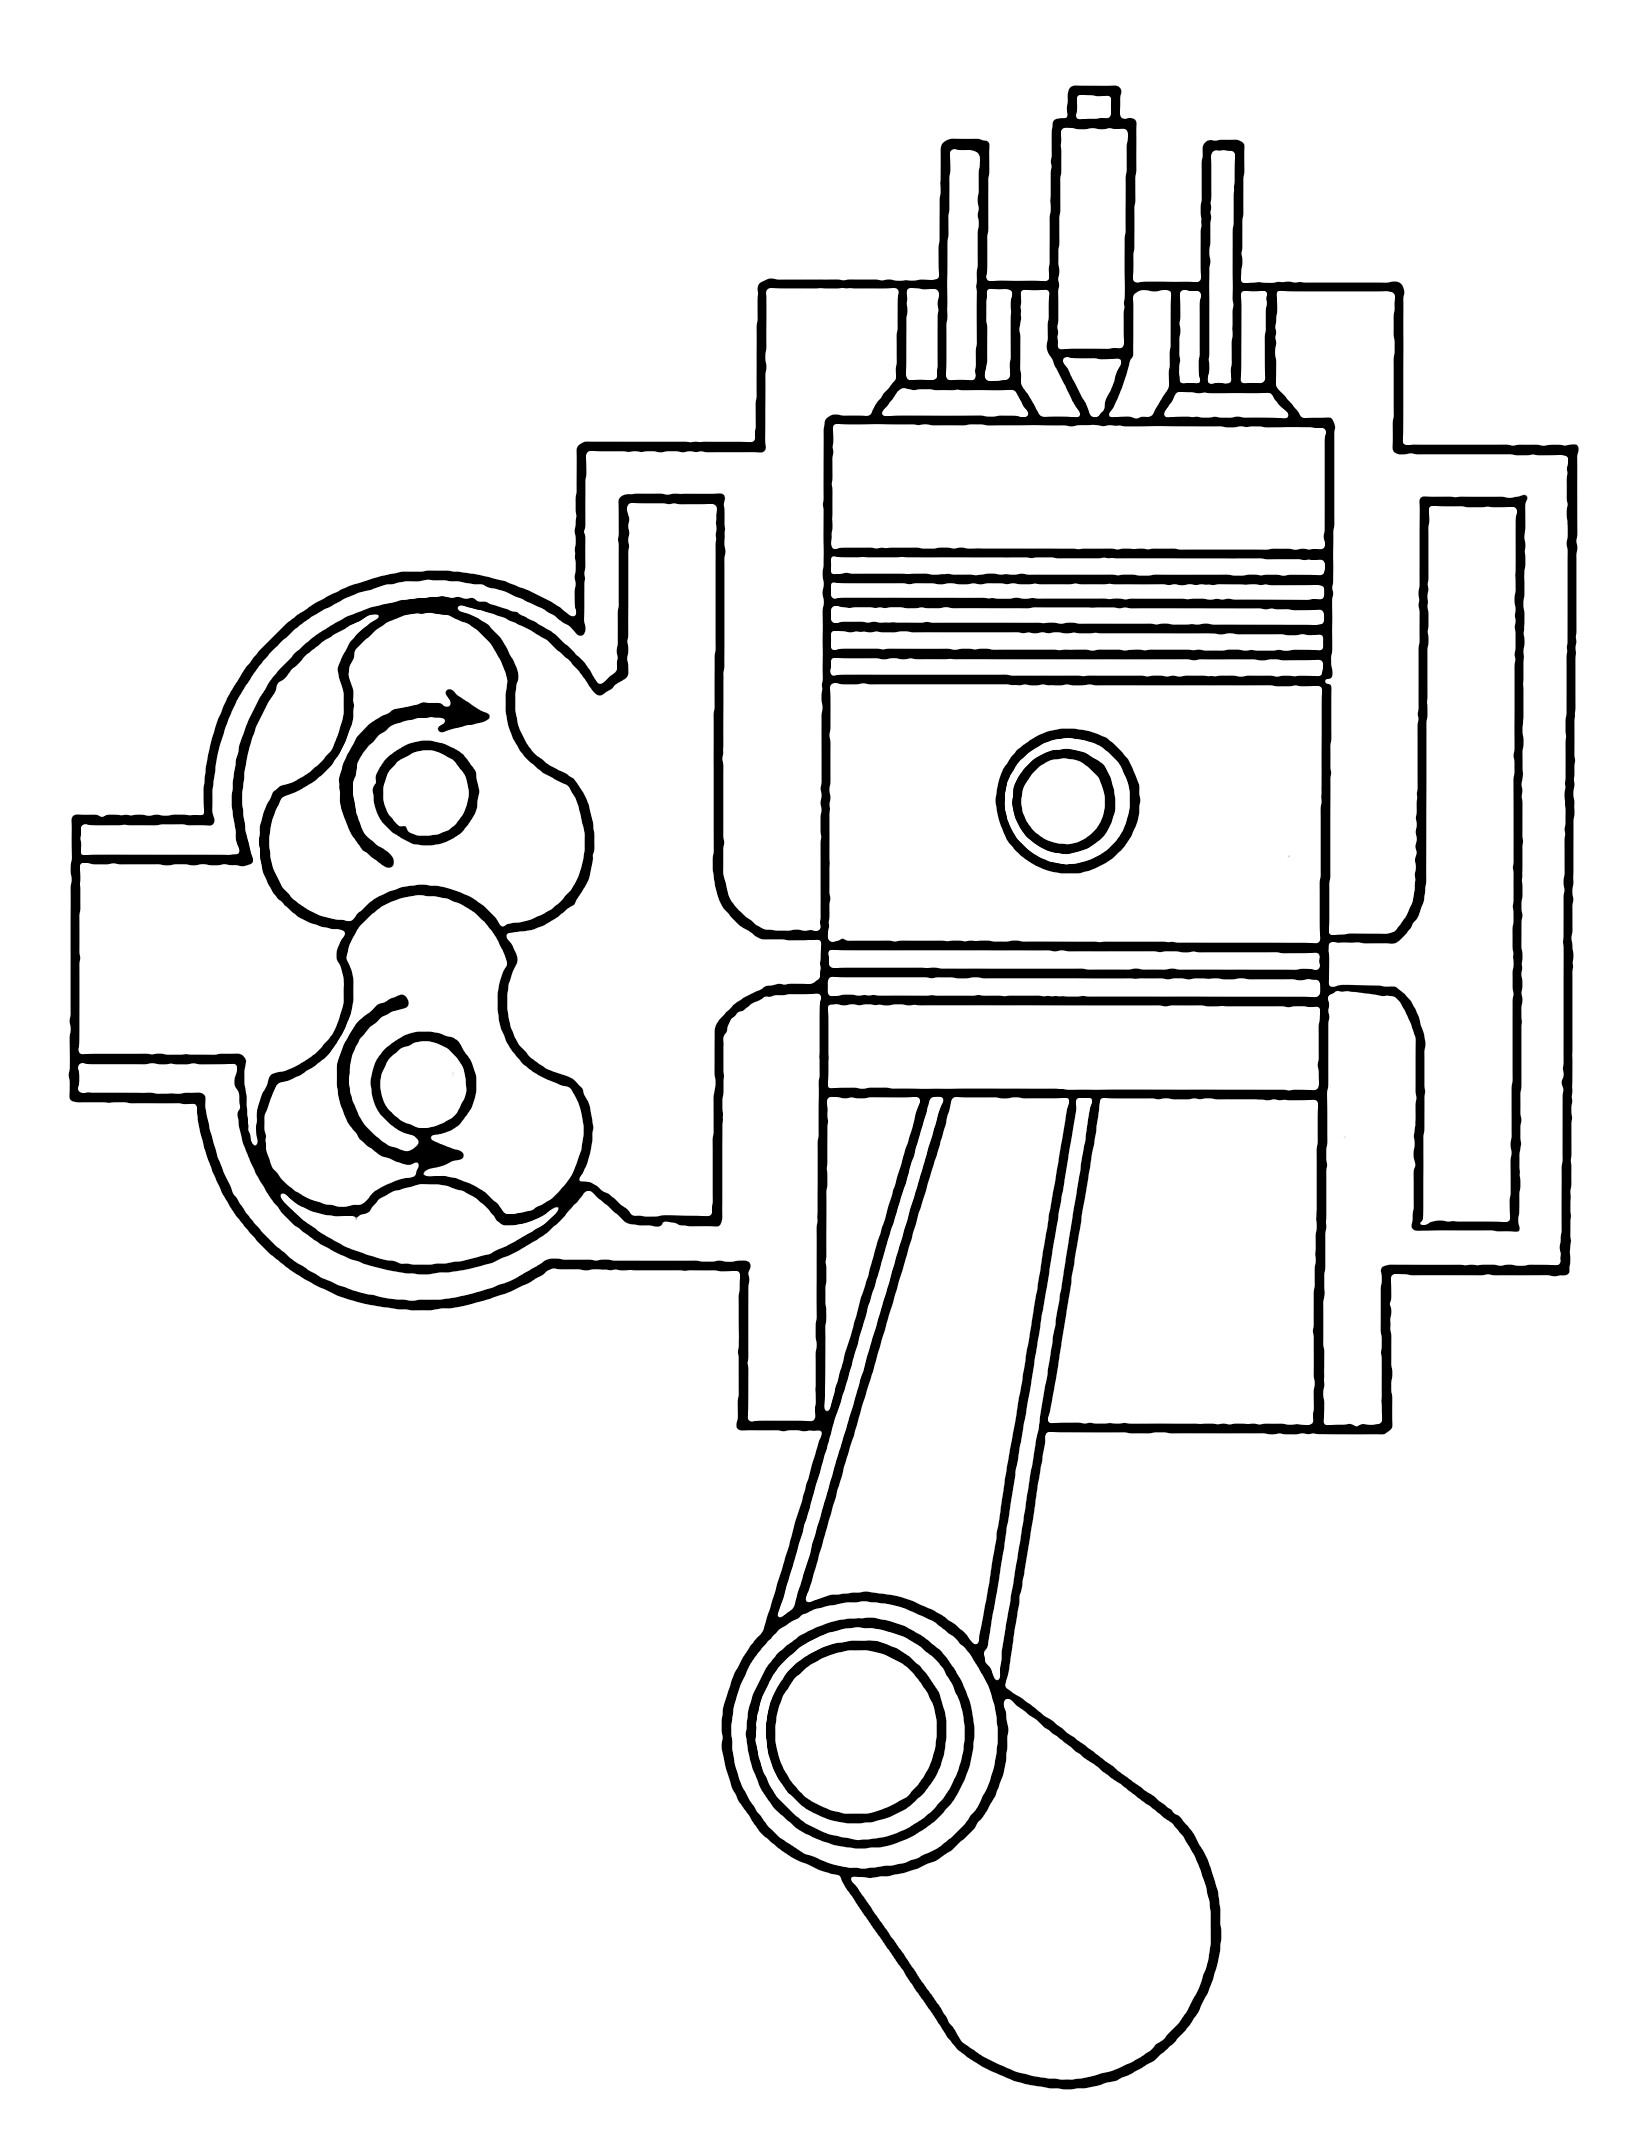 Diesel Engine Drawing At Free For Personal Use 2 Stroke Diagram 1633x2147 Filediesel Psf